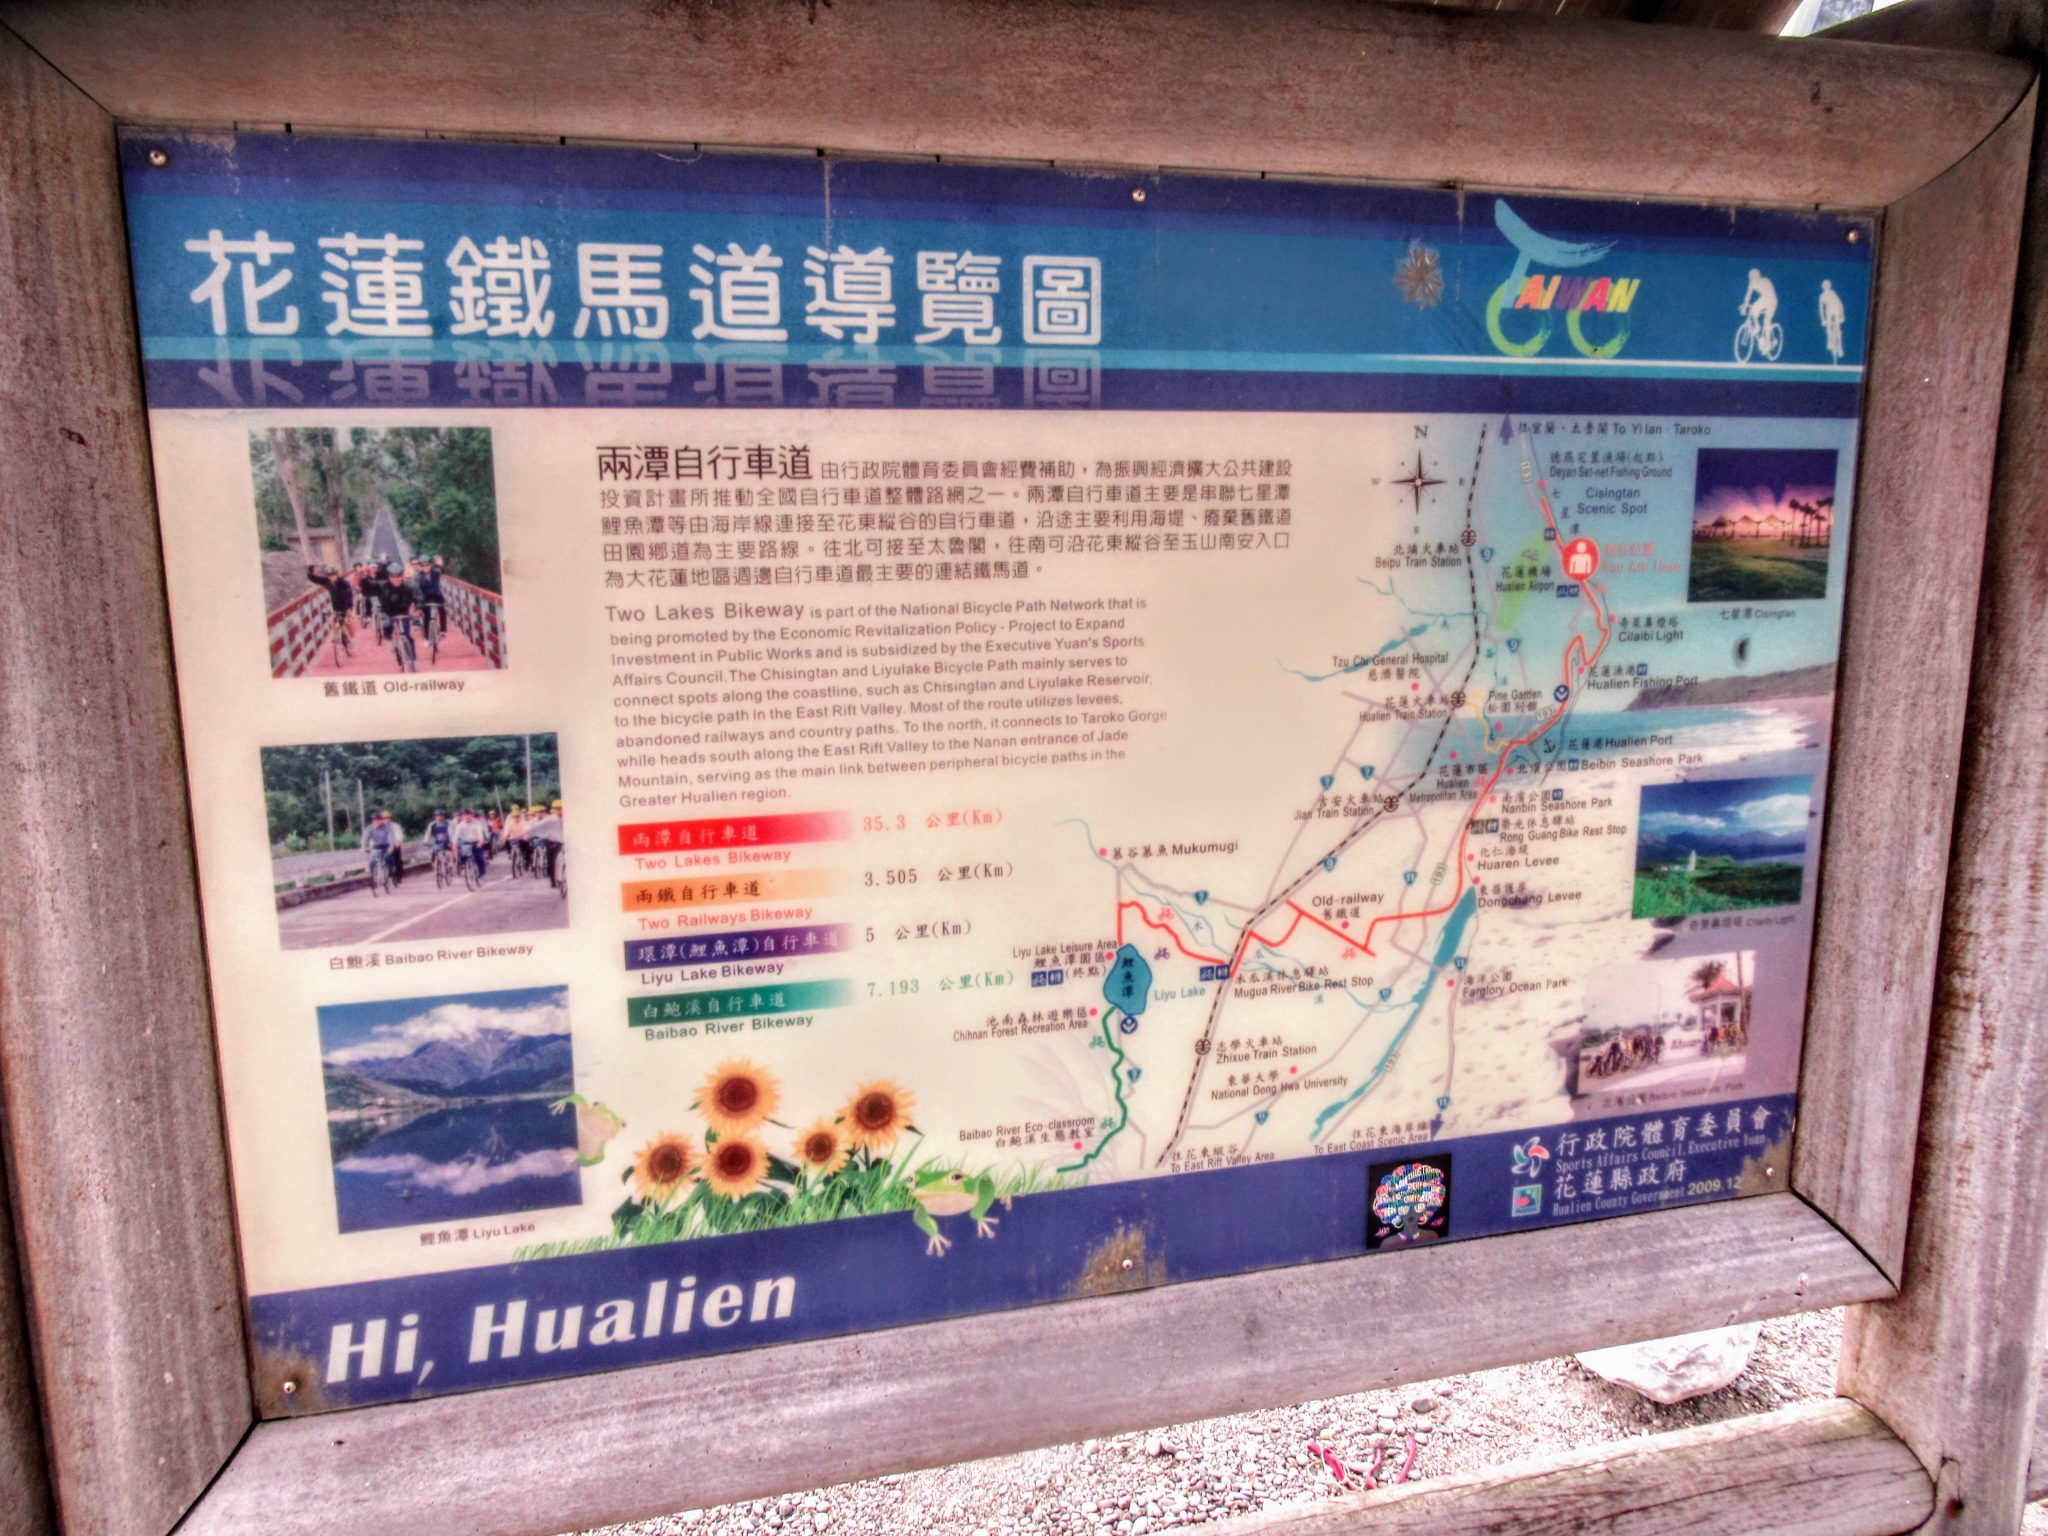 Map of Taroko Gorge, Hualien, Taiwan